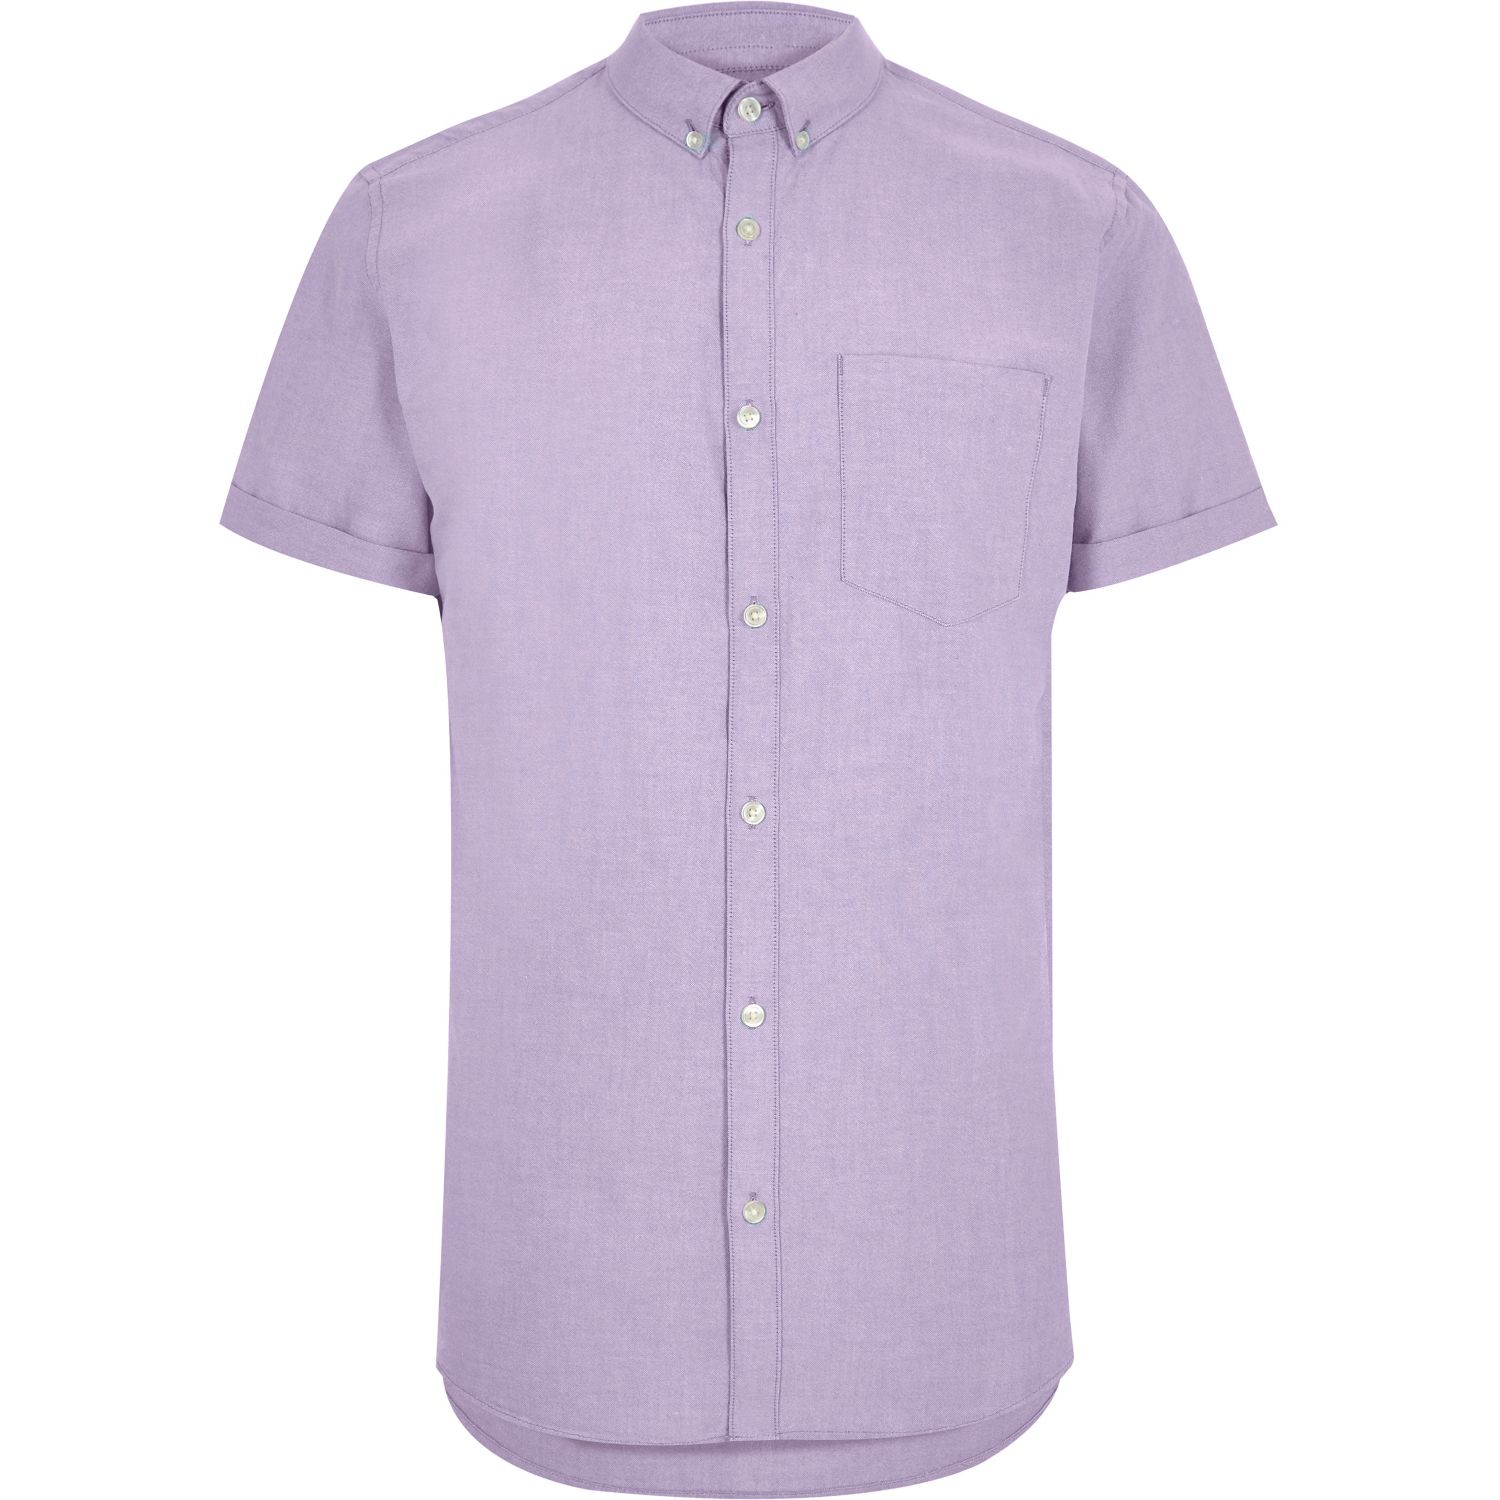 River island light purple short sleeve oxford shirt in Light purple dress shirt men